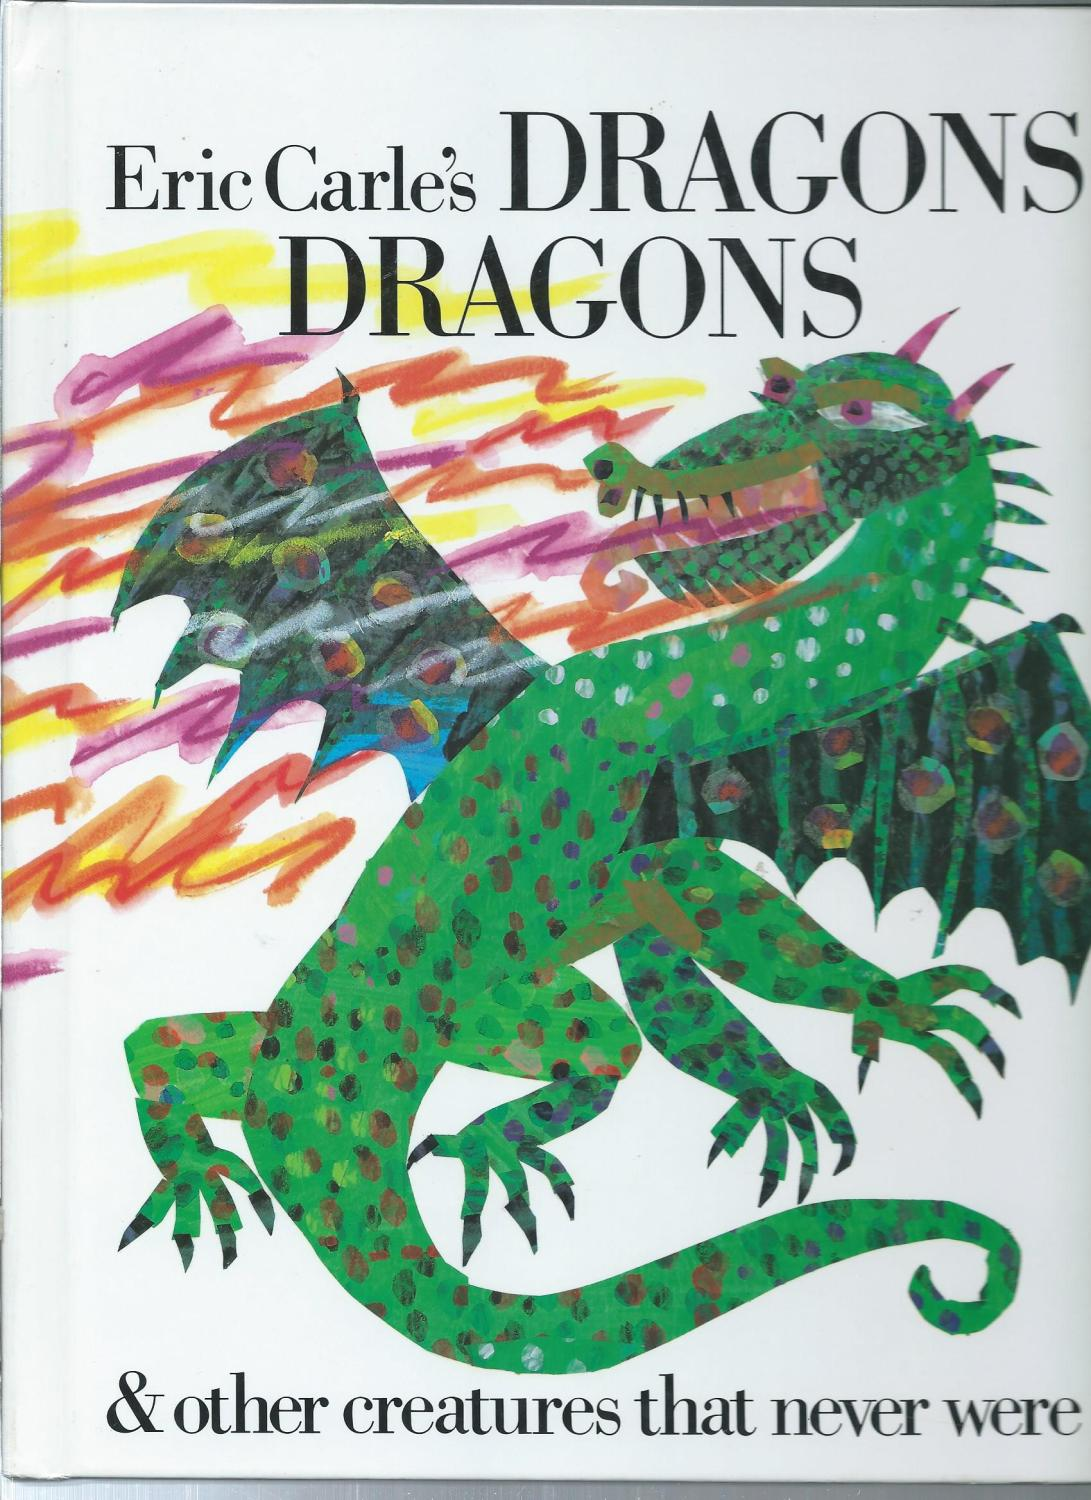 DRAGONS DRAGONS: And Other Creatuers That Never Were - CARLE, ERIC ; Whipple, Laura (editor); Carle, Eric (illustrator)